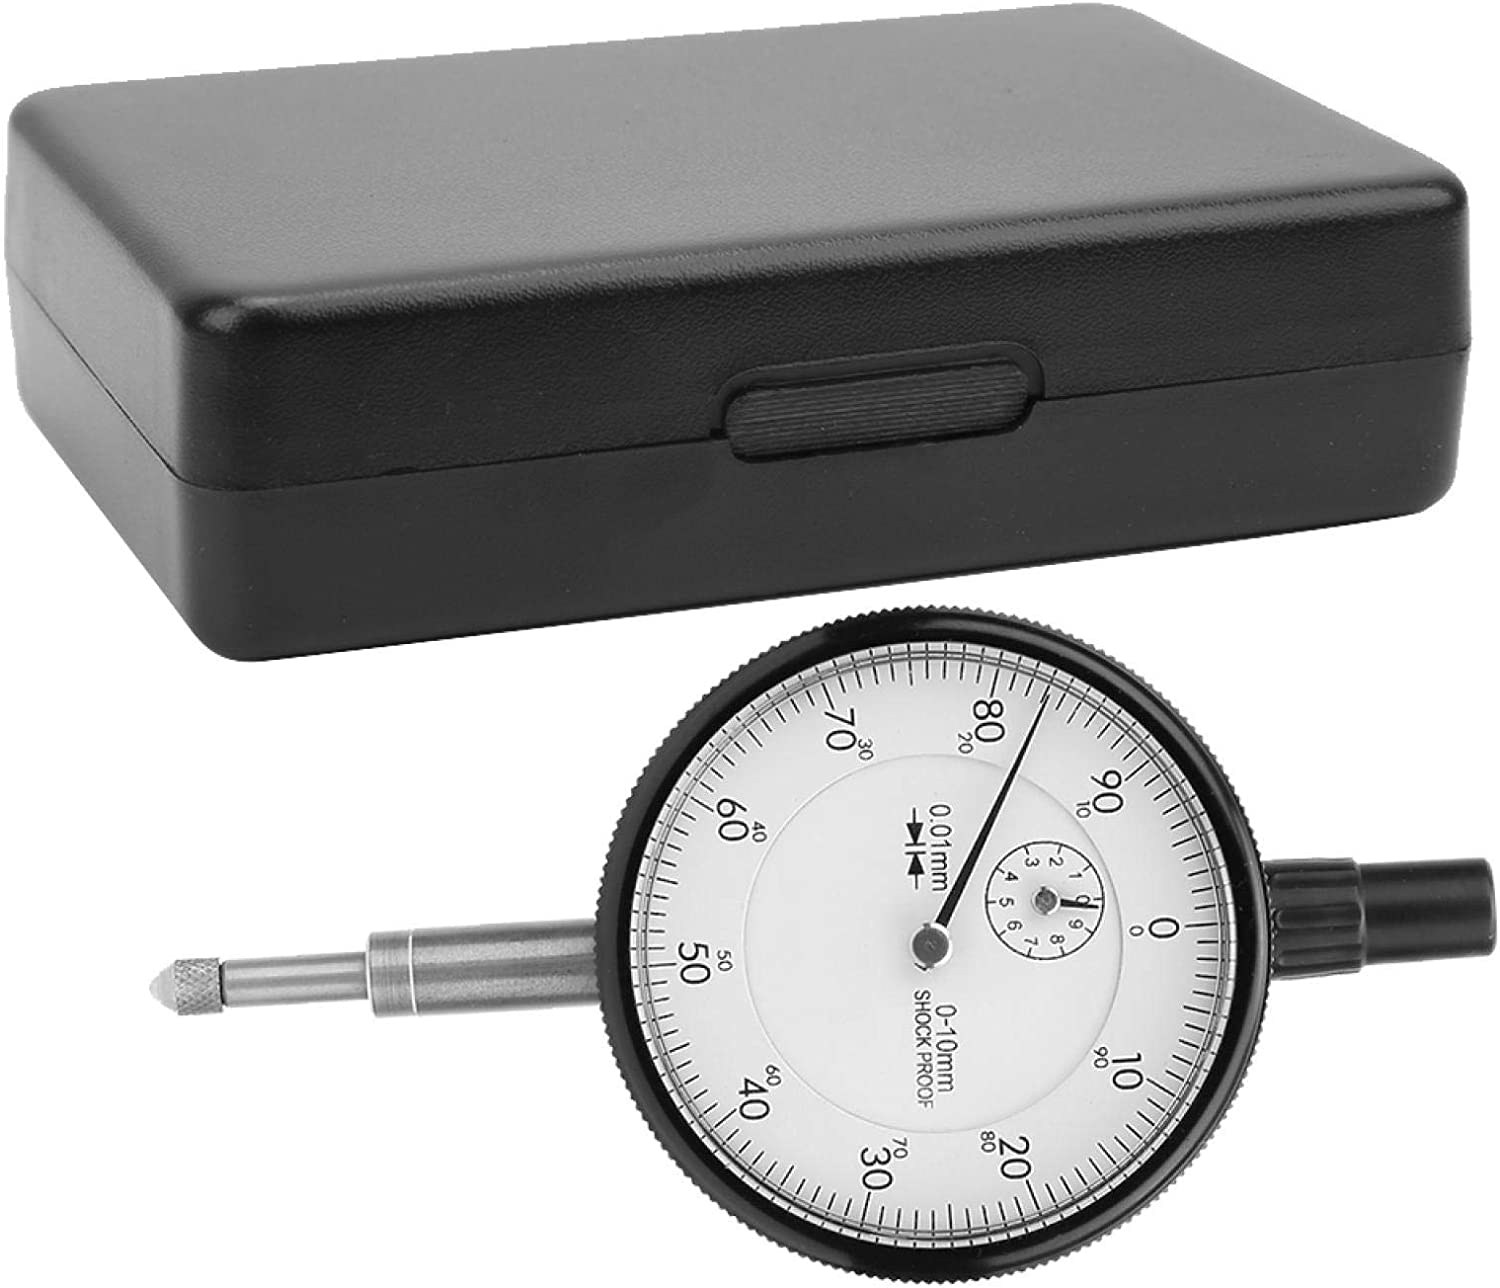 Durlclth Dial Indicator-0.01MM Accuracy Now on sale Shockproof Max 71% OFF 0-10MM Range